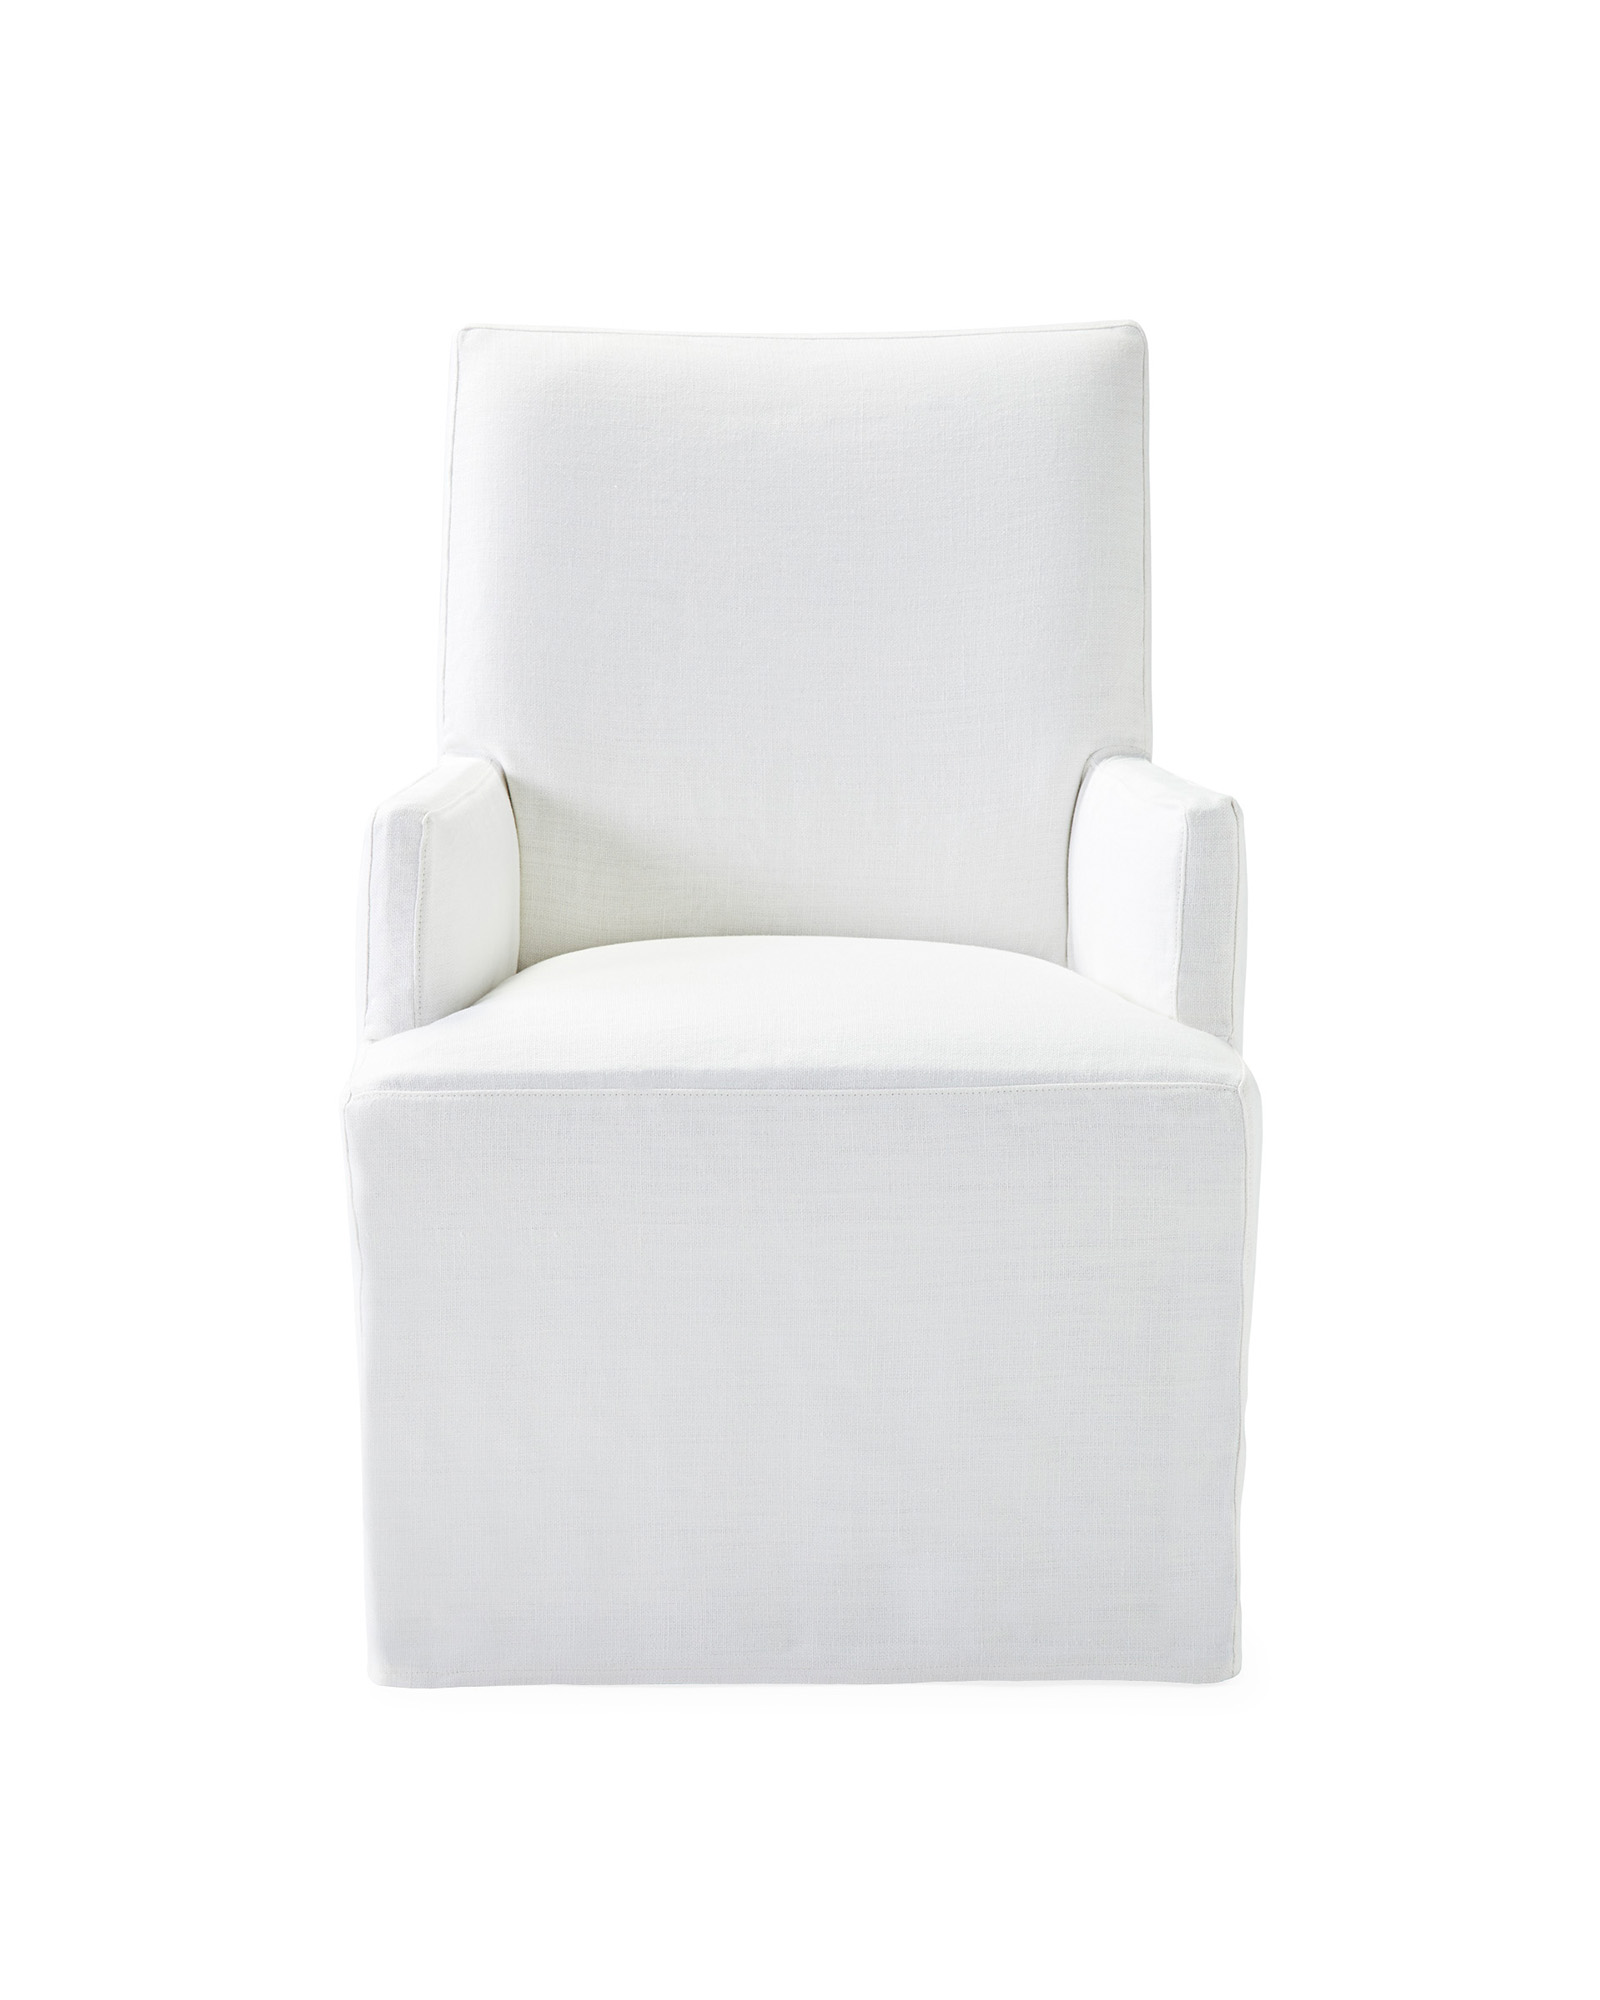 Ross Armchair long slipcovered - Serena & Lily